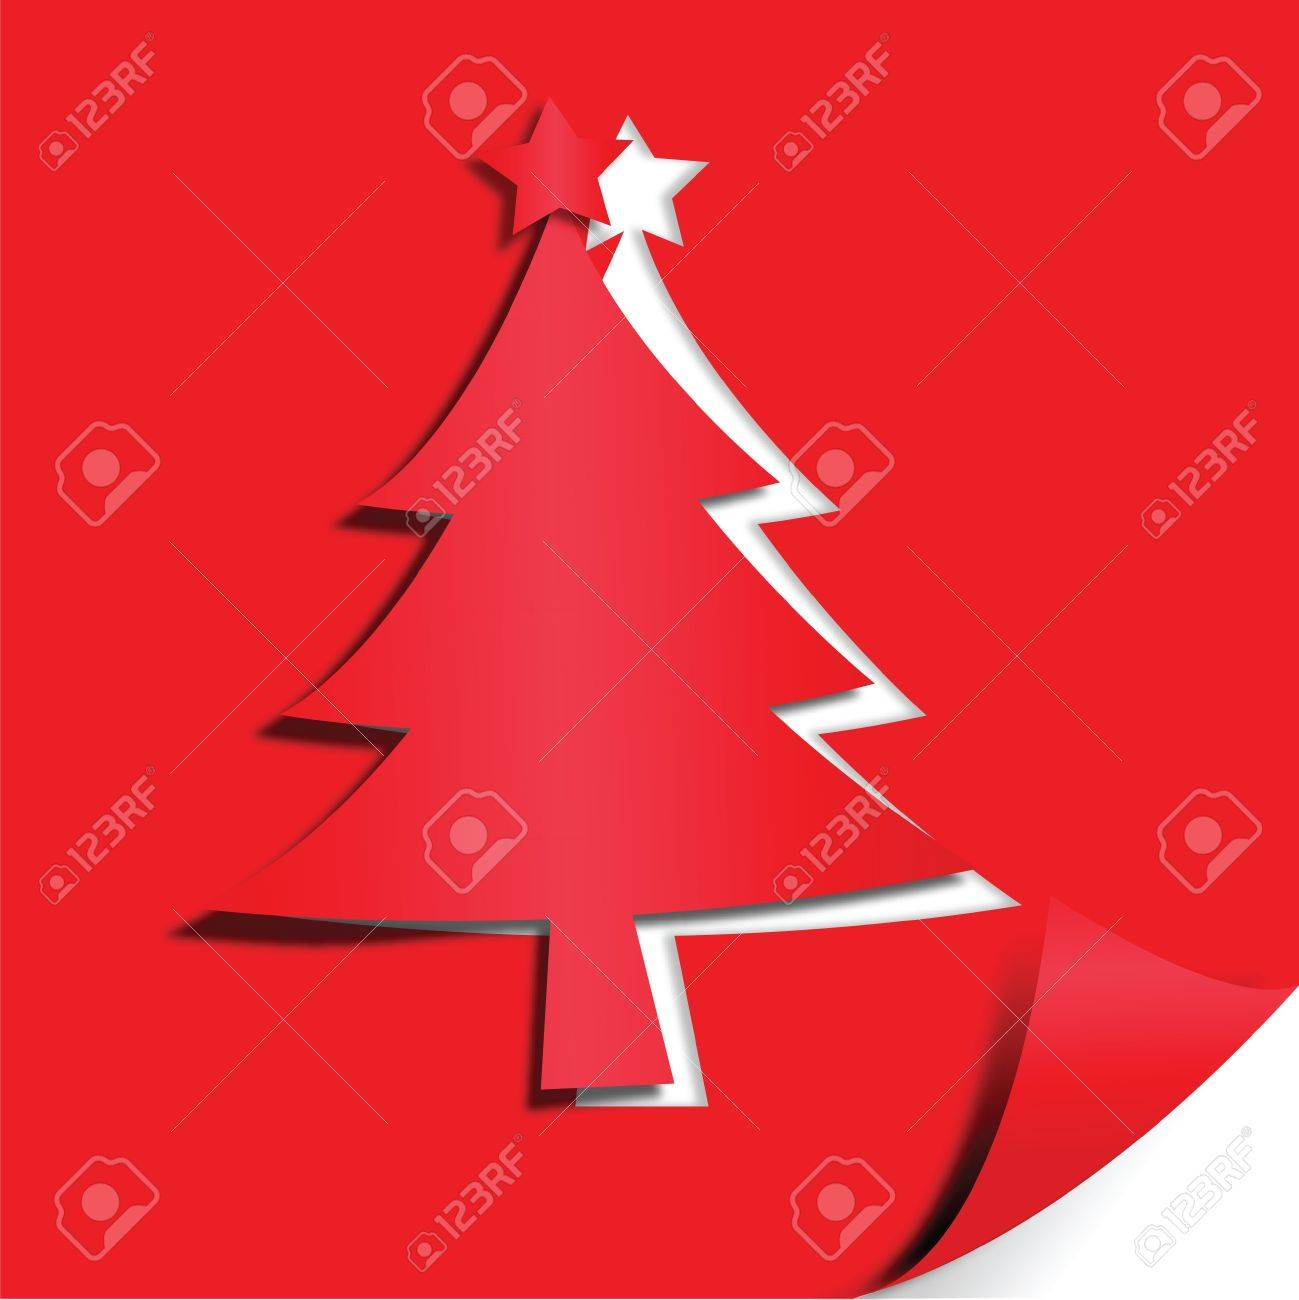 Christmas Tree Paper Craft Art Work Royalty Free Cliparts Vectors